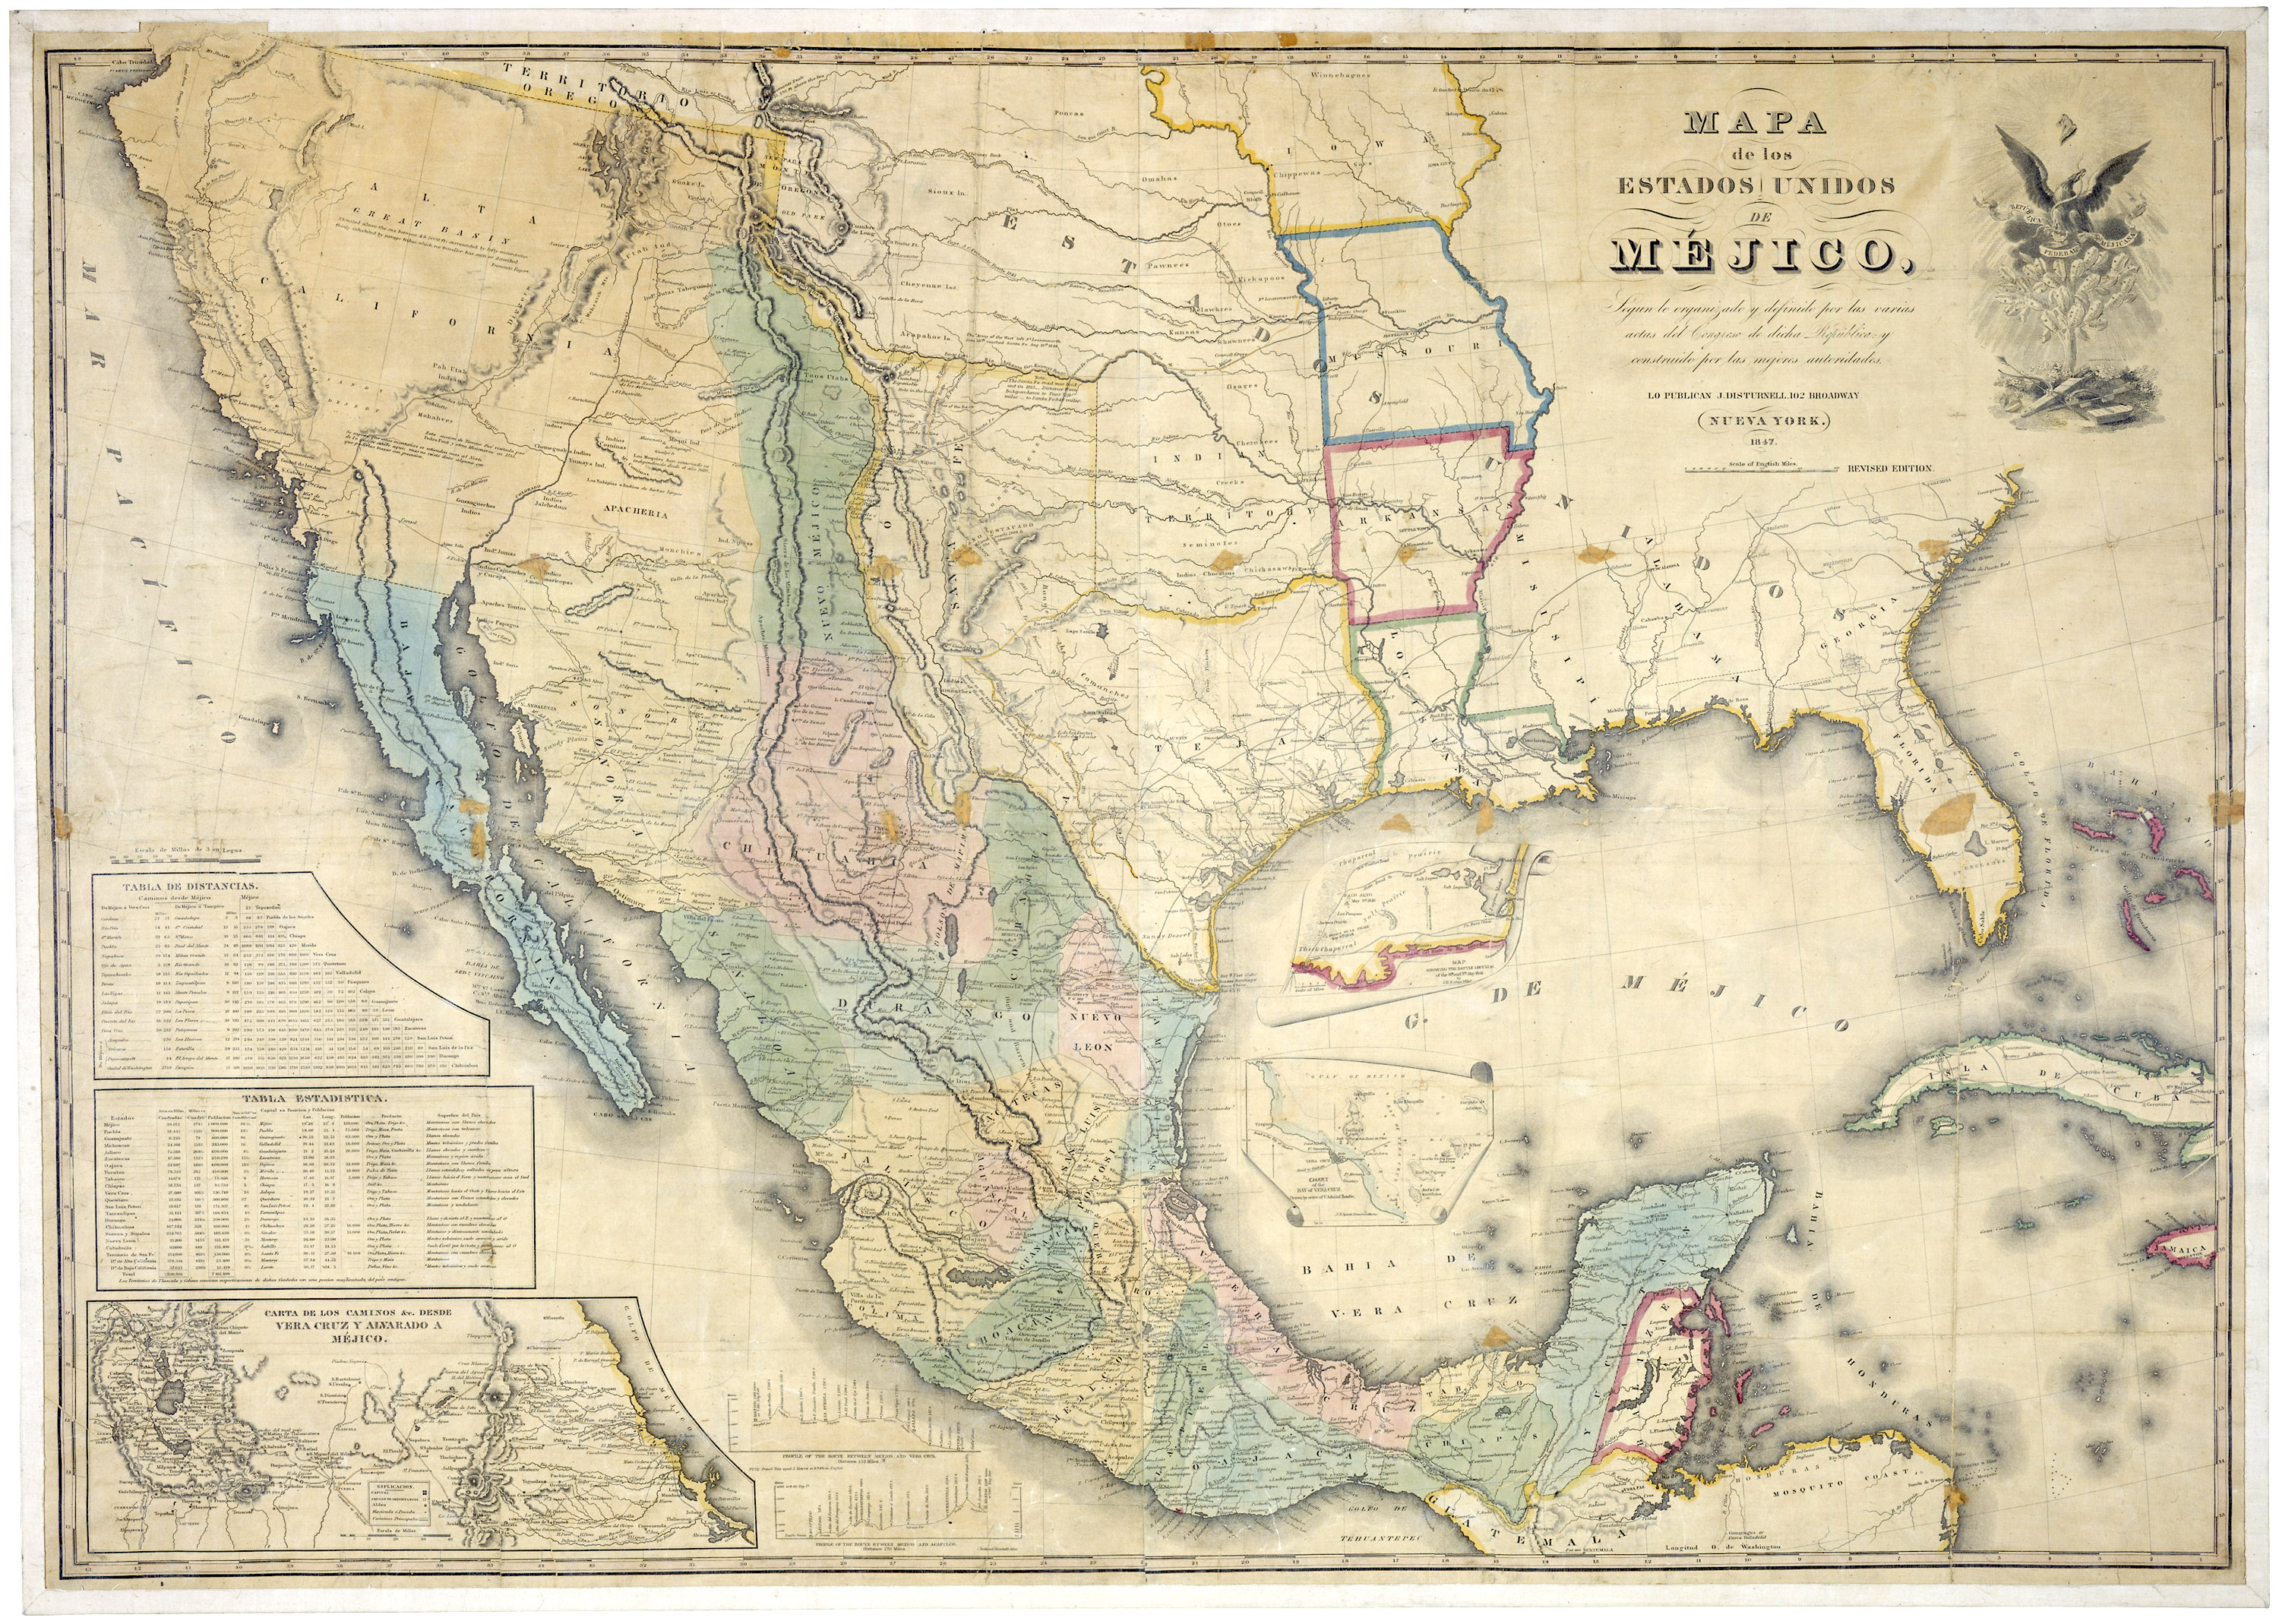 FileMap of Mexico 1847jpg Wikimedia Commons